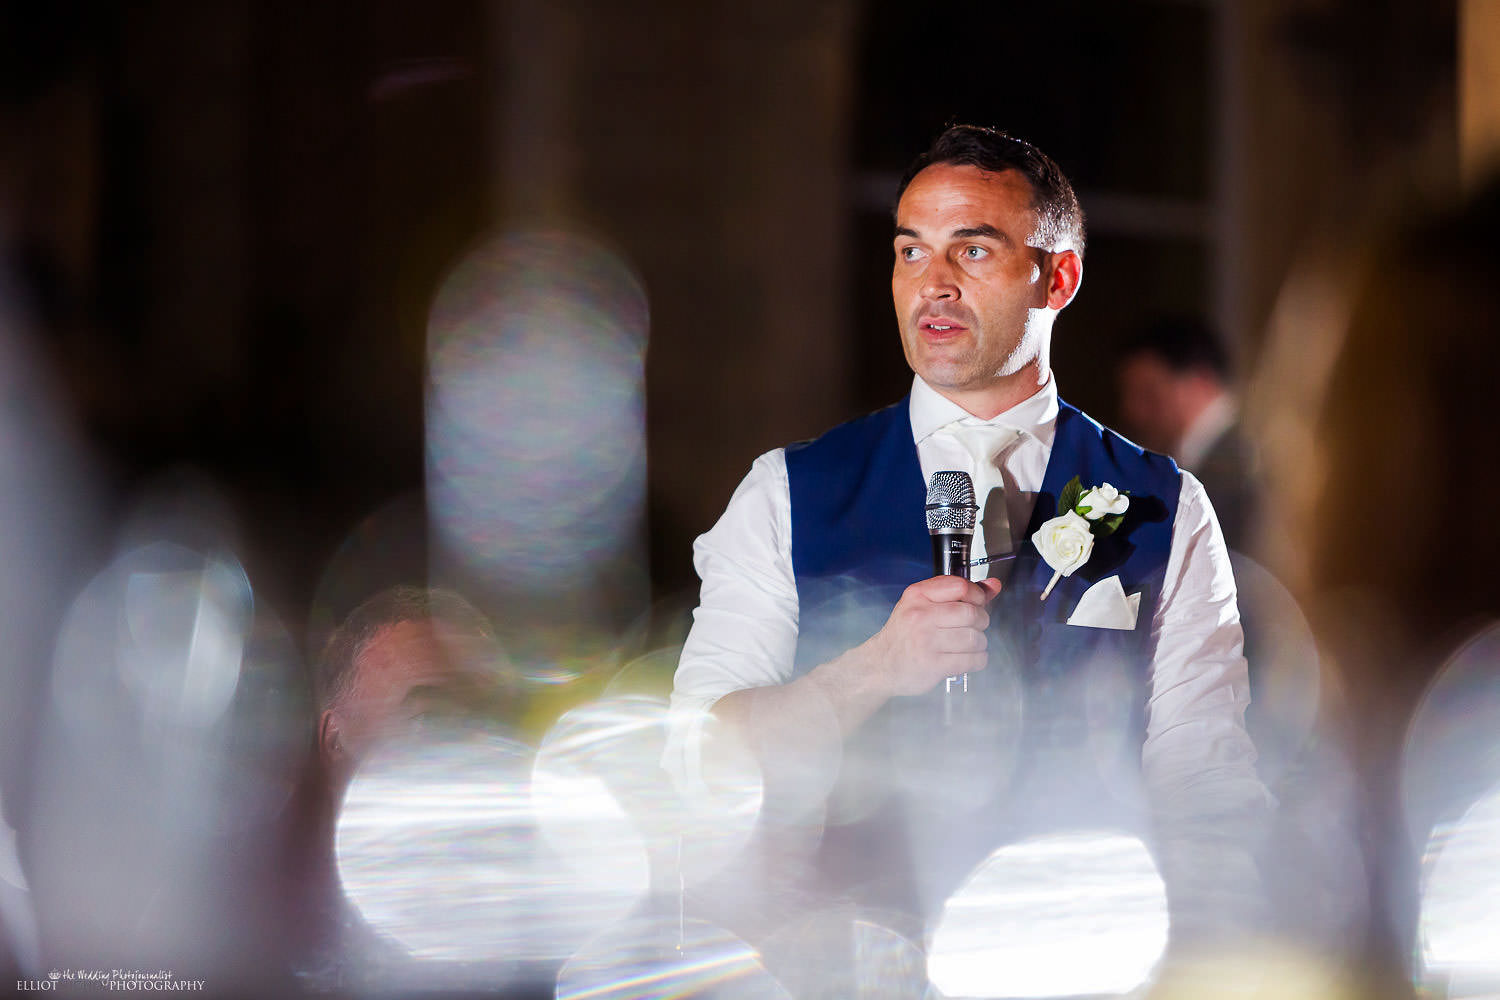 Groom makes his speech during the wedding reception.